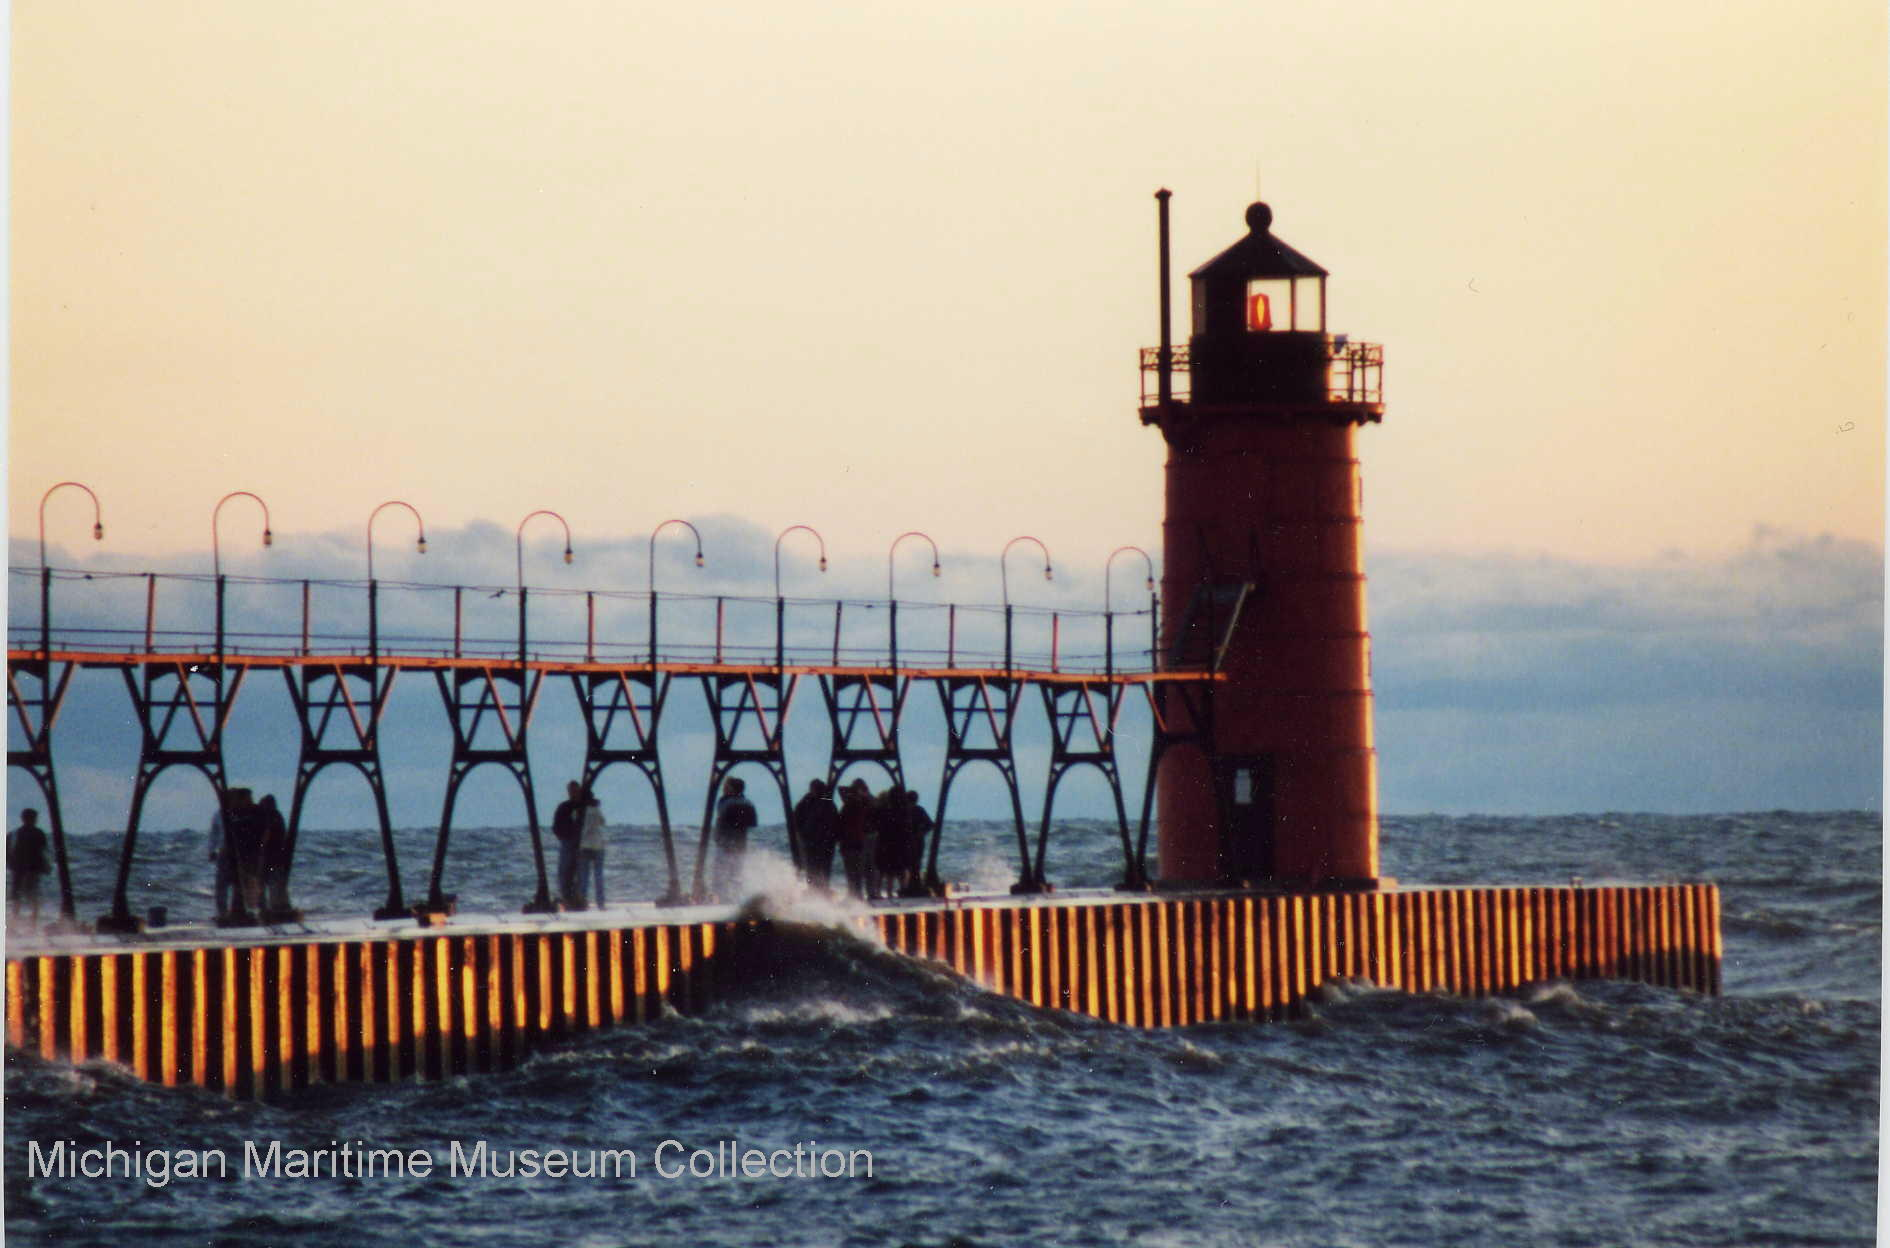 Historical Association of South Haven - Preserving Our Past ...